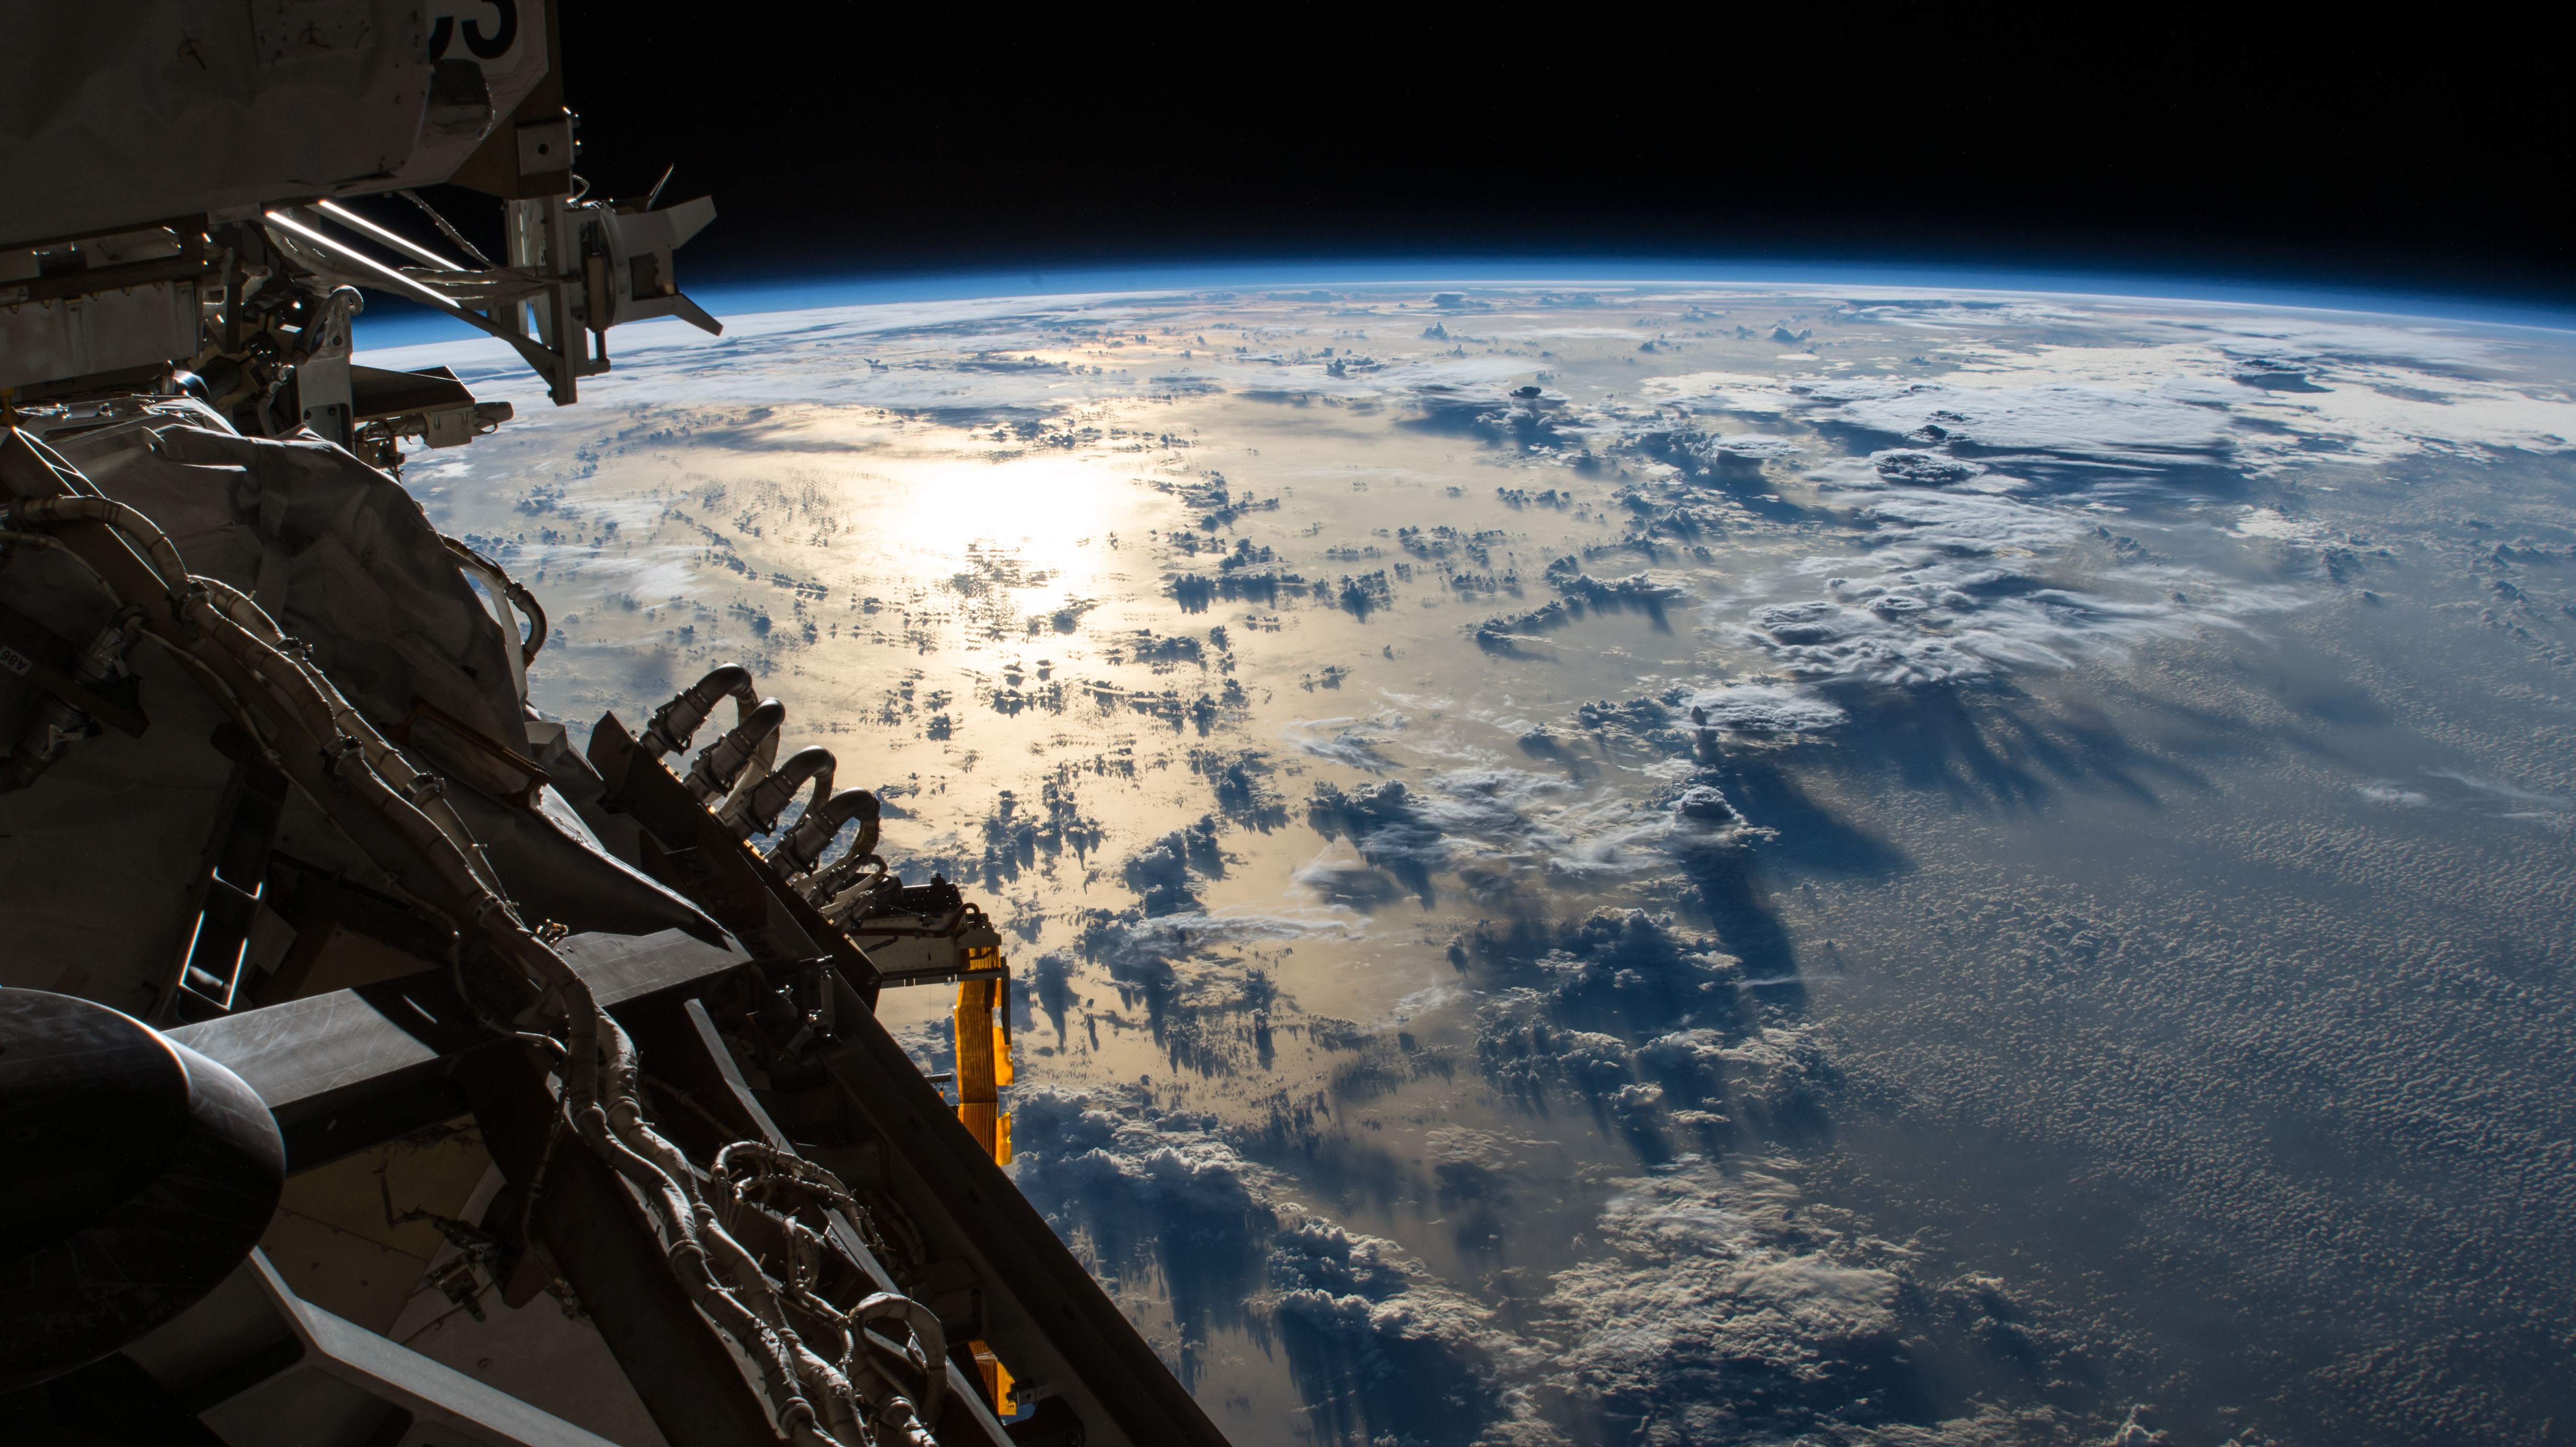 General 4928x2768 NASA space Pacific Ocean ISS Earth